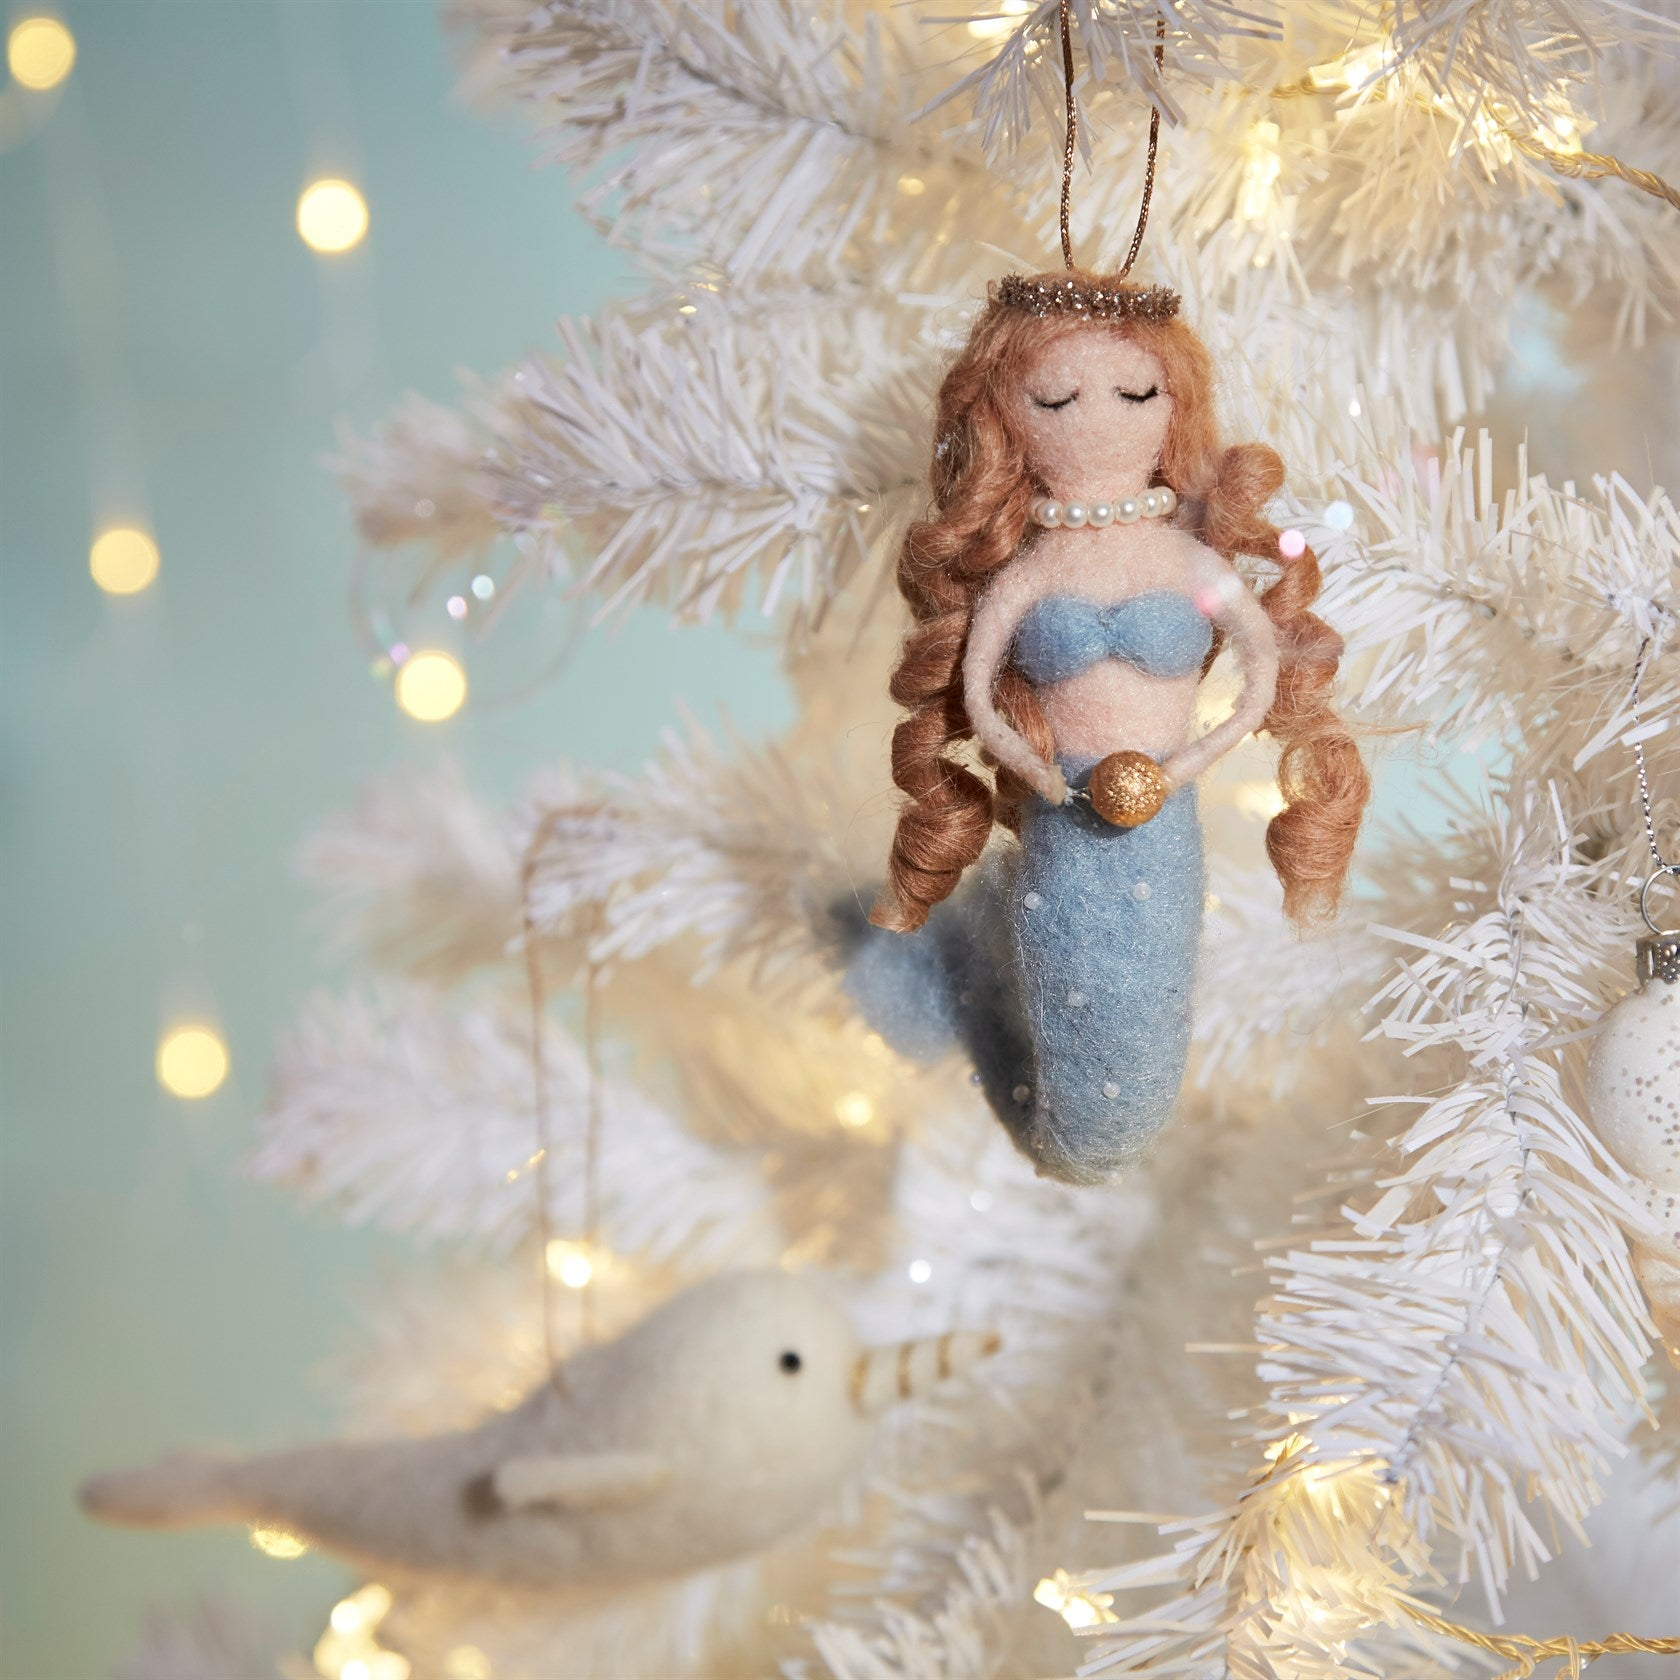 Mermaid Ornaments & Decorations